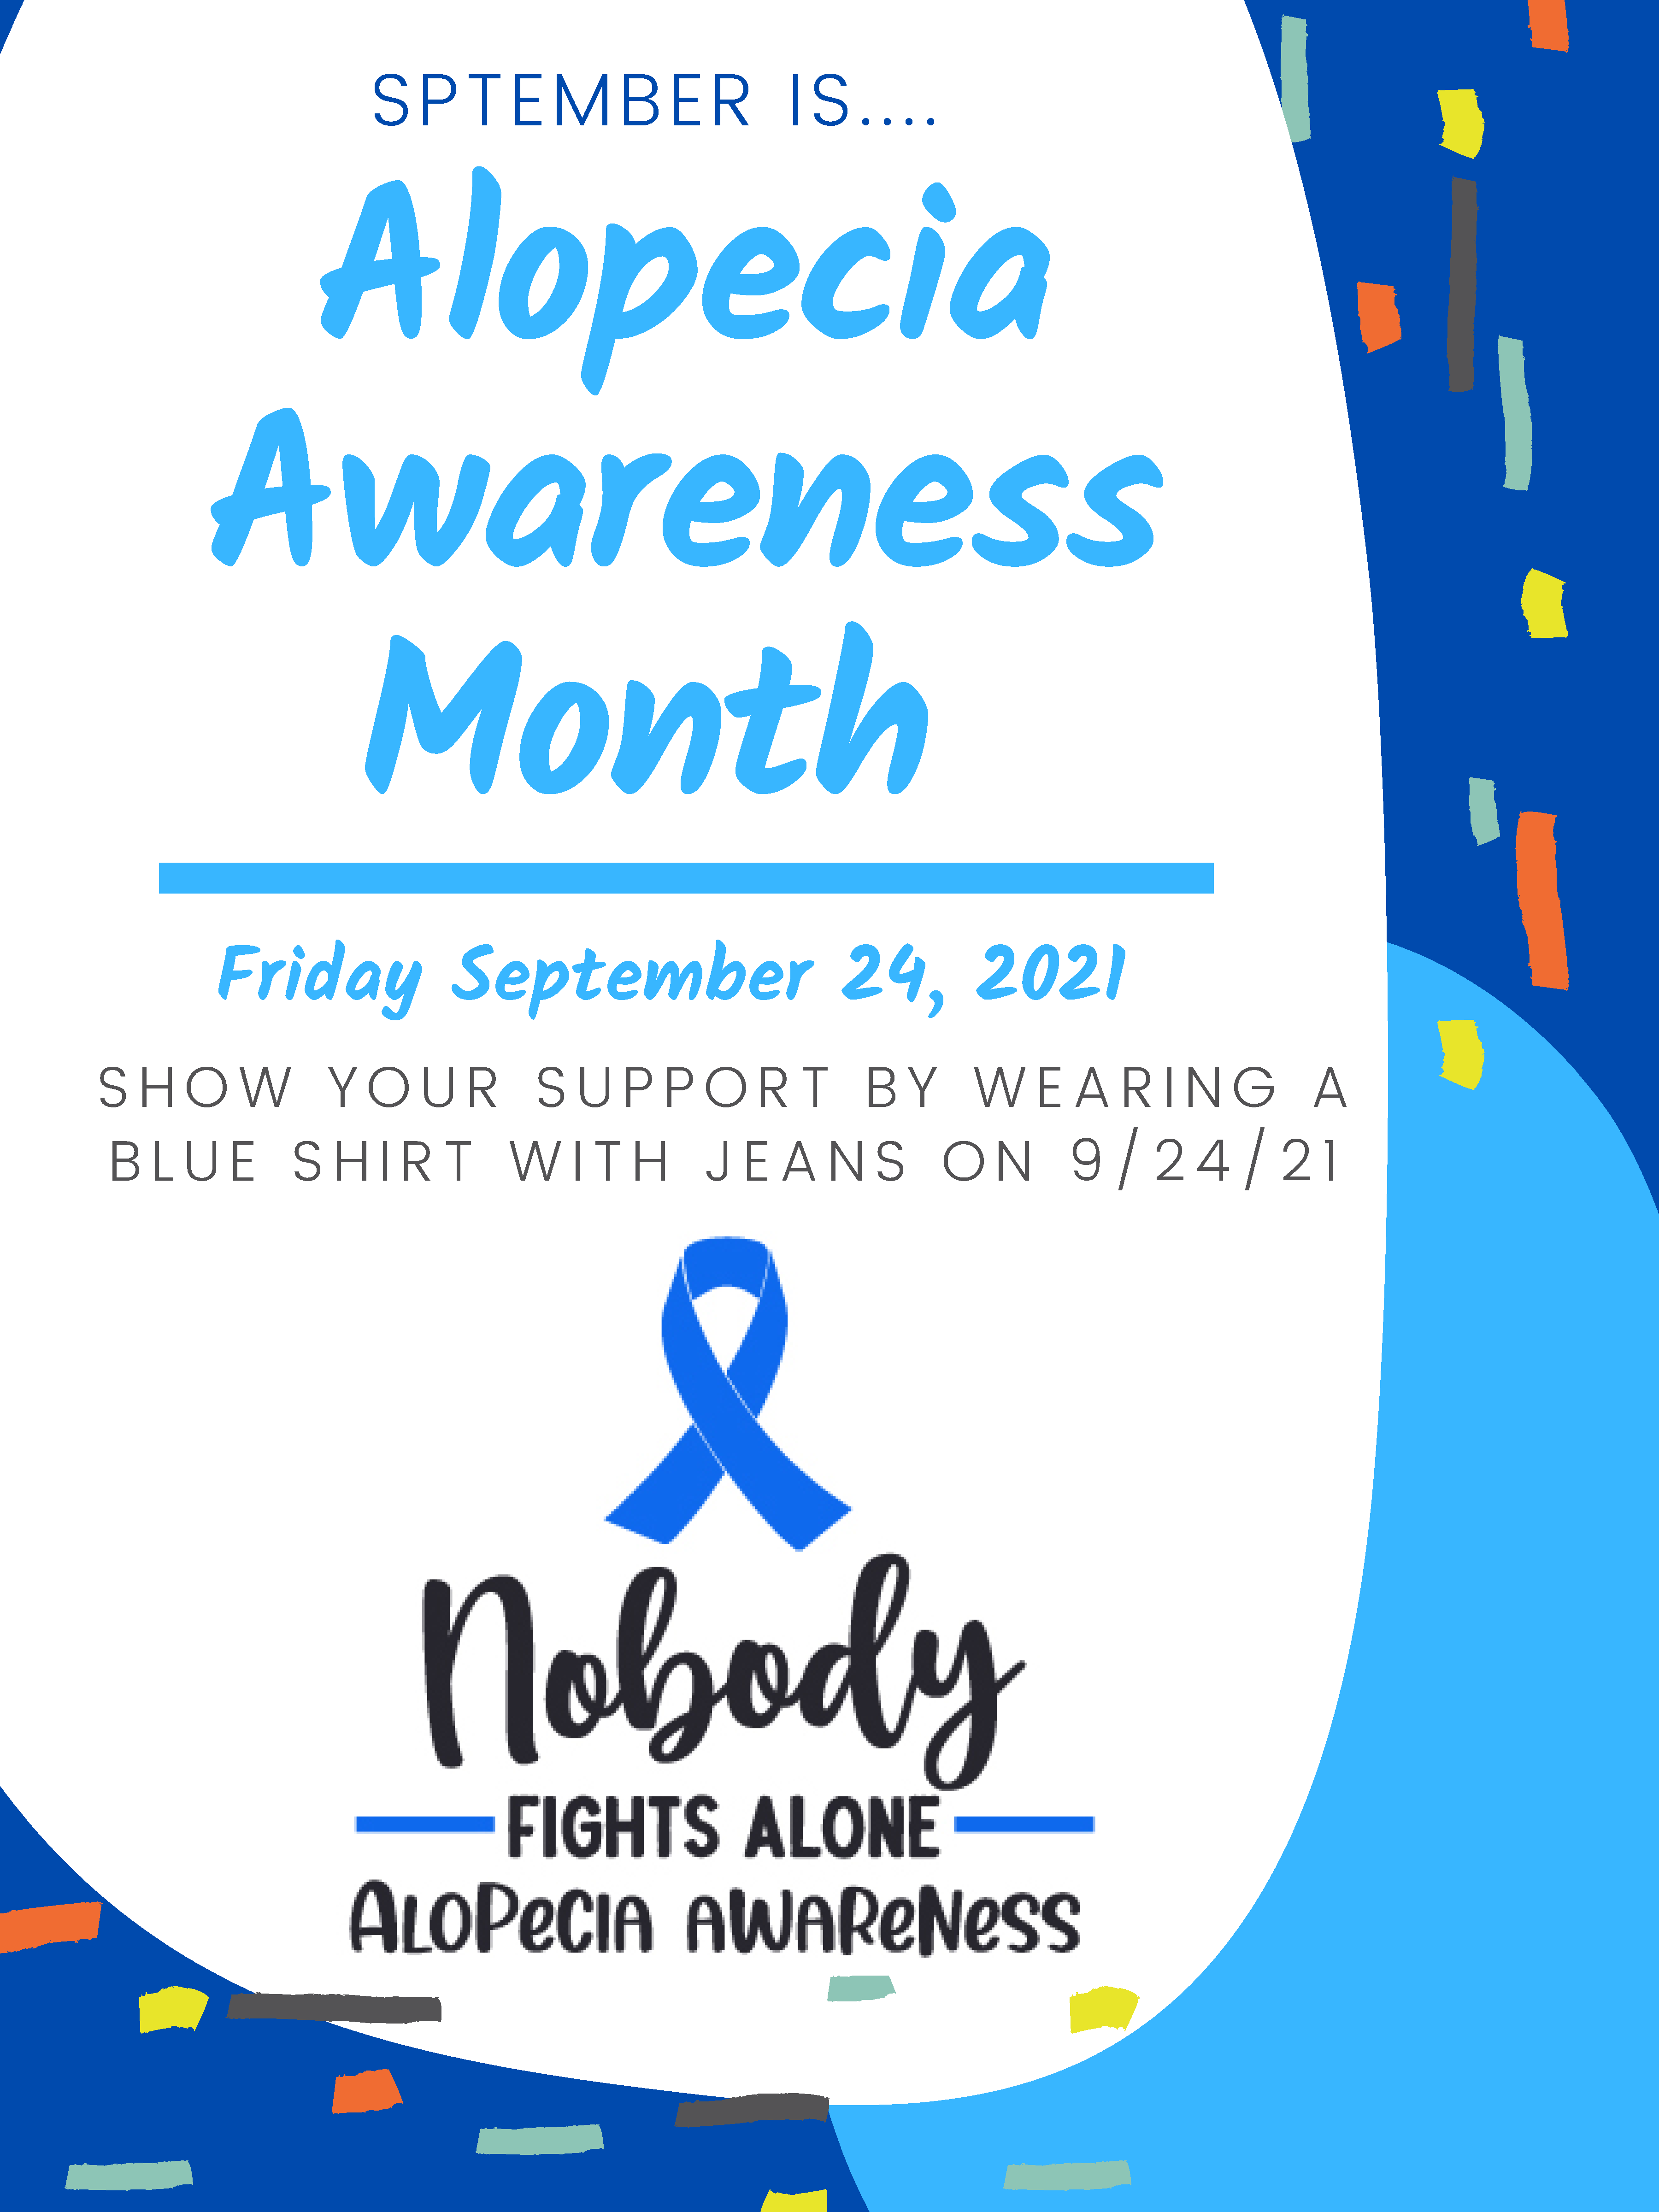 An image of the Alopecia Awareness Month Flyer.